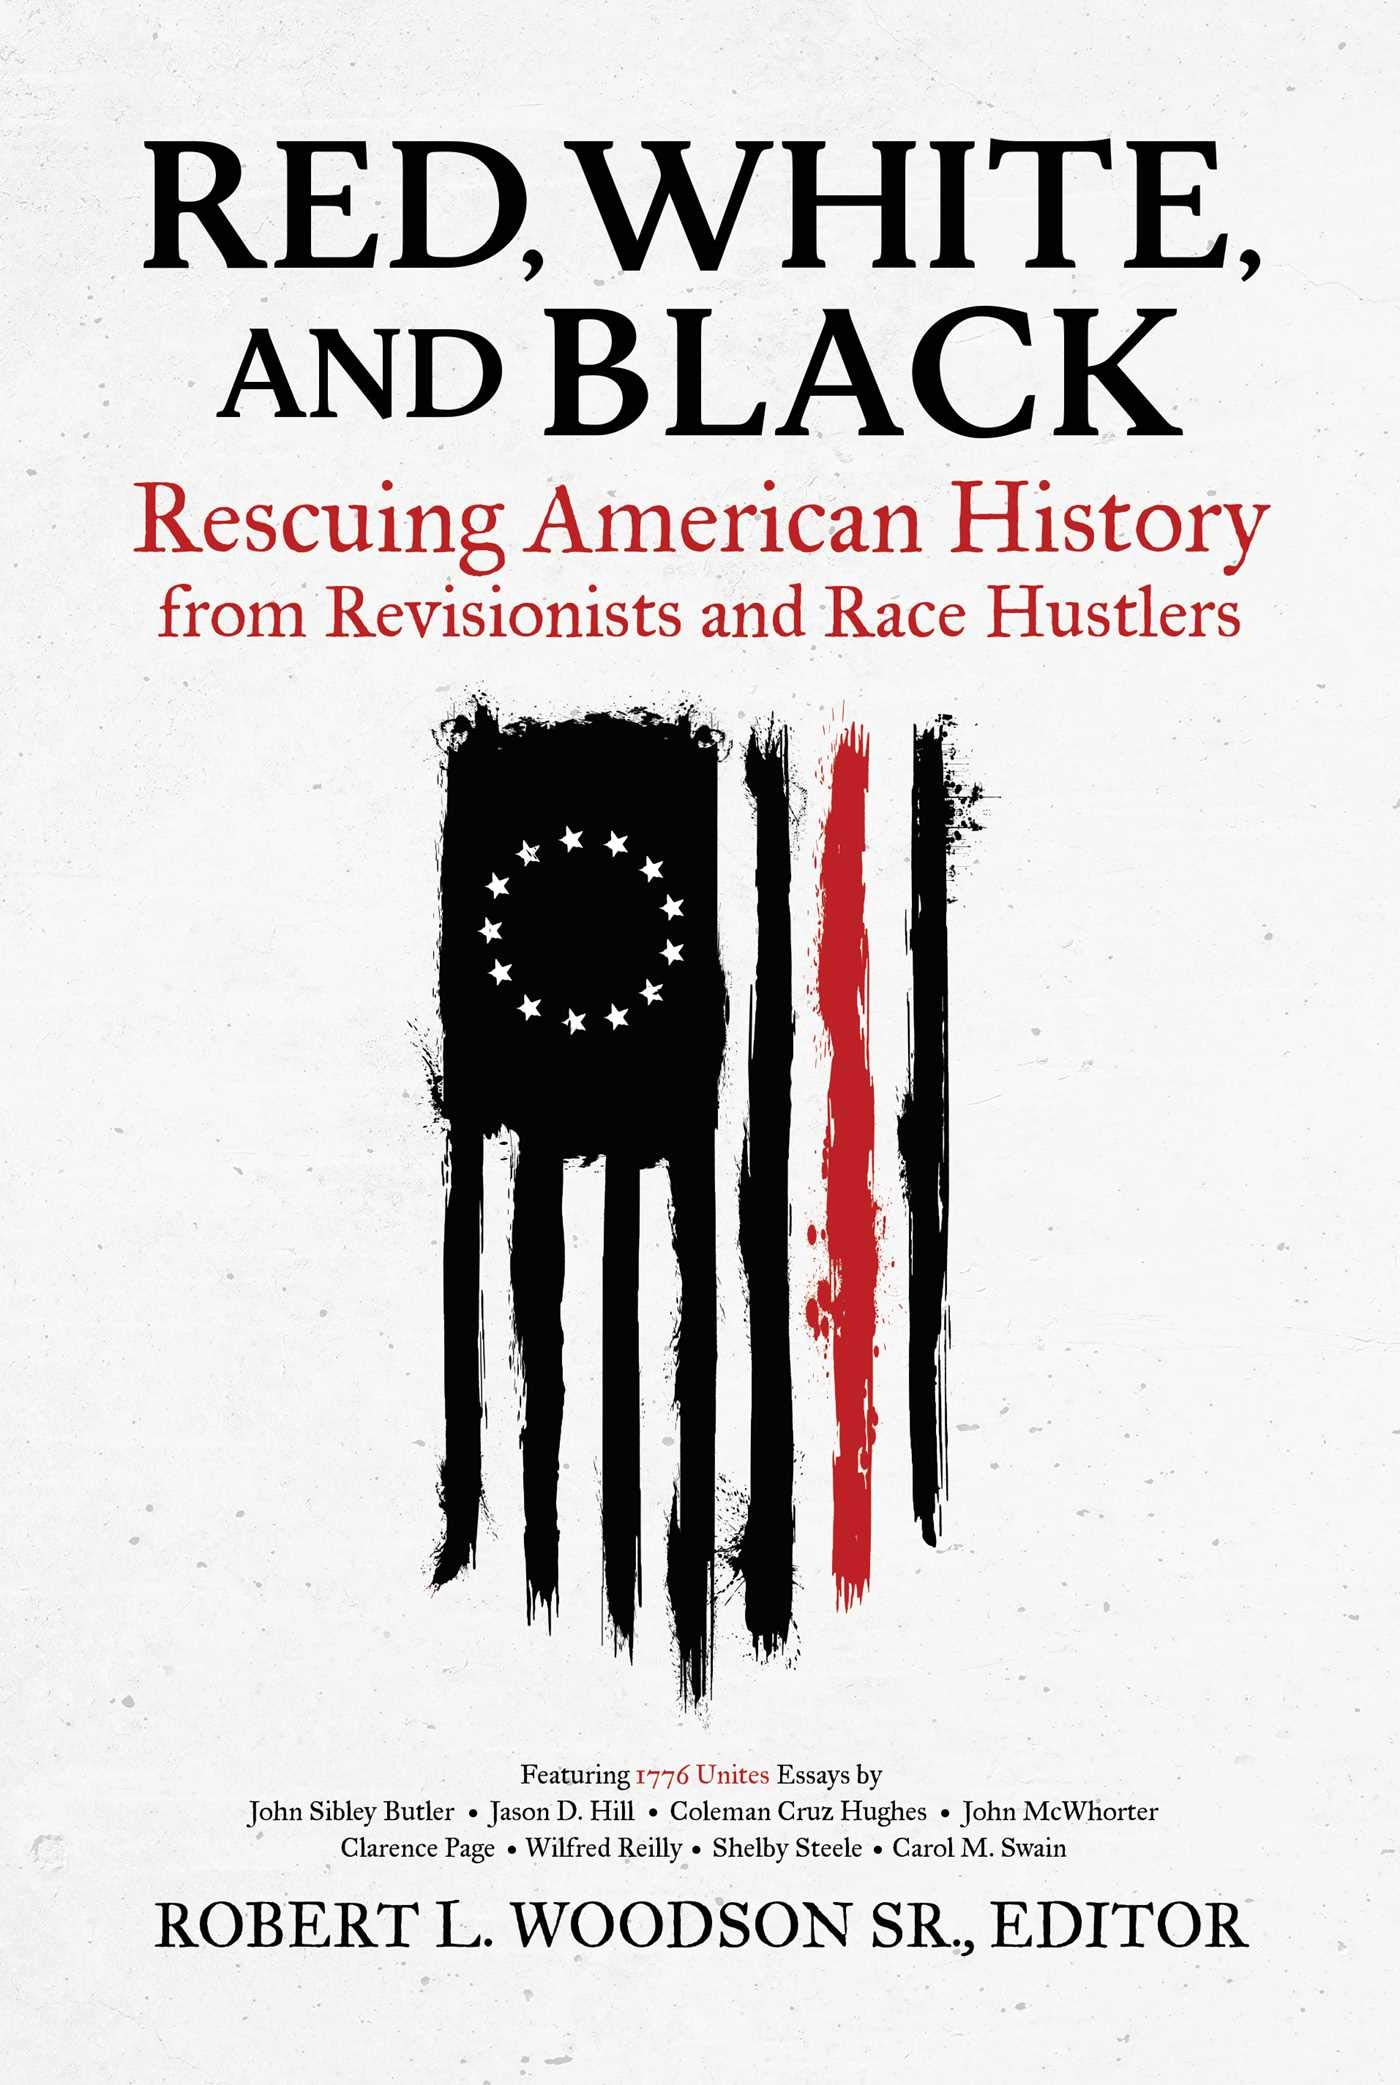 Red, White, and Black- Rescuing American History from Revisionists and Race Hustlers